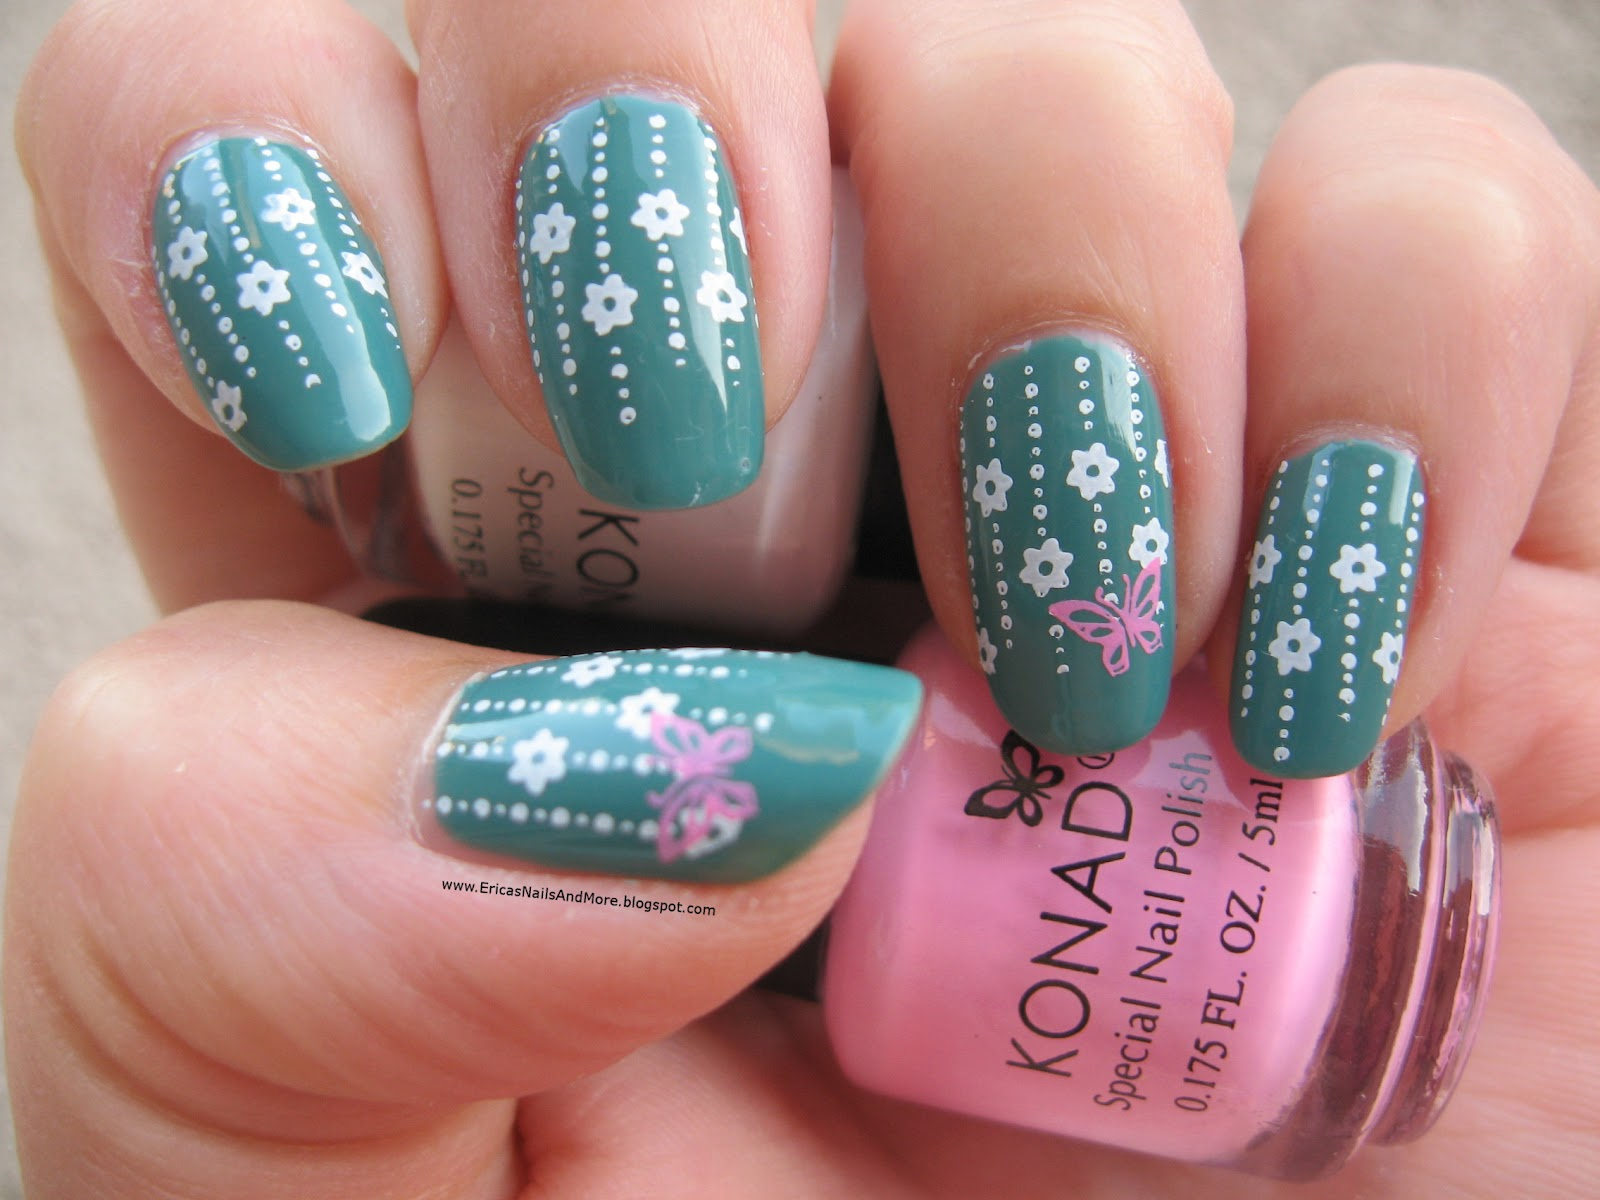 Erica's Nails and More: NOTD: Daphne Stamping Nail Art